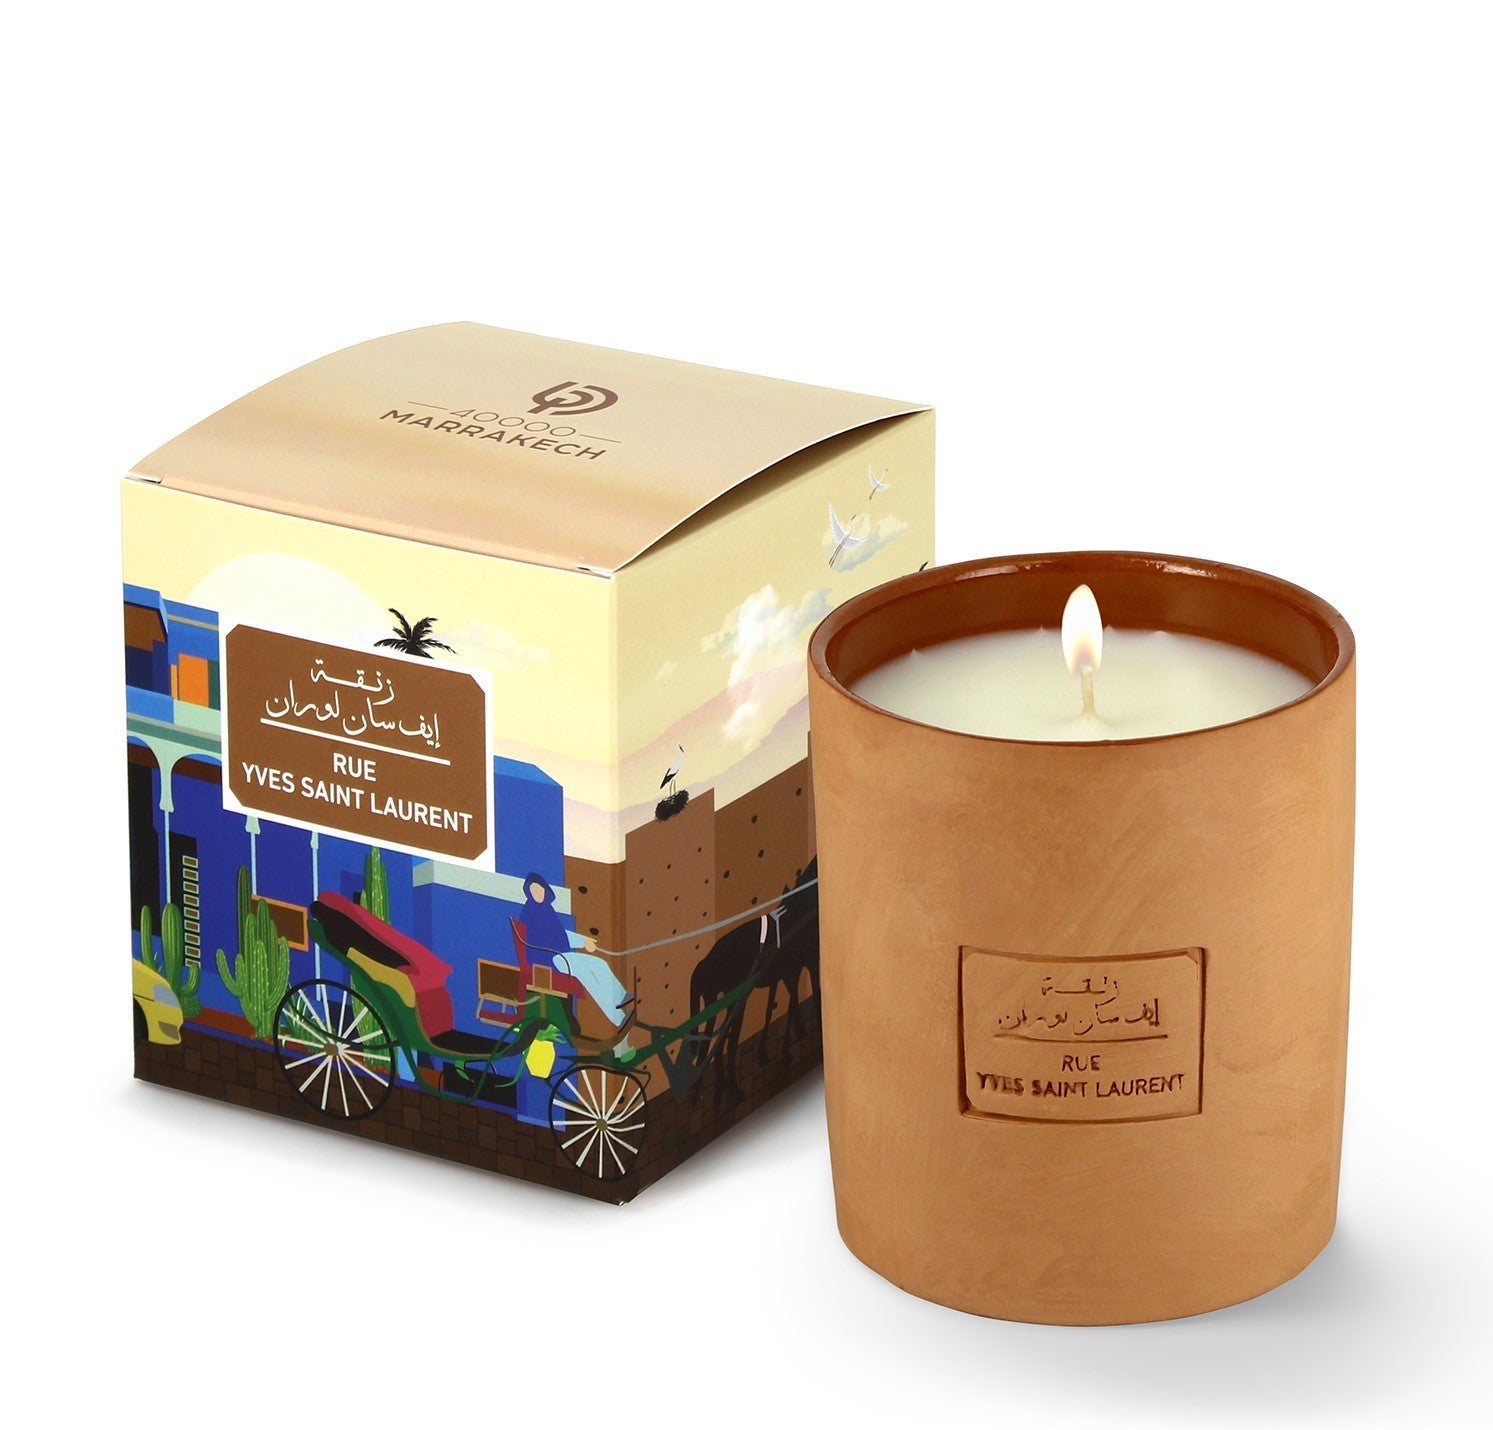 Scented candle 'Rue Yves Saint Laurent' Marrakech